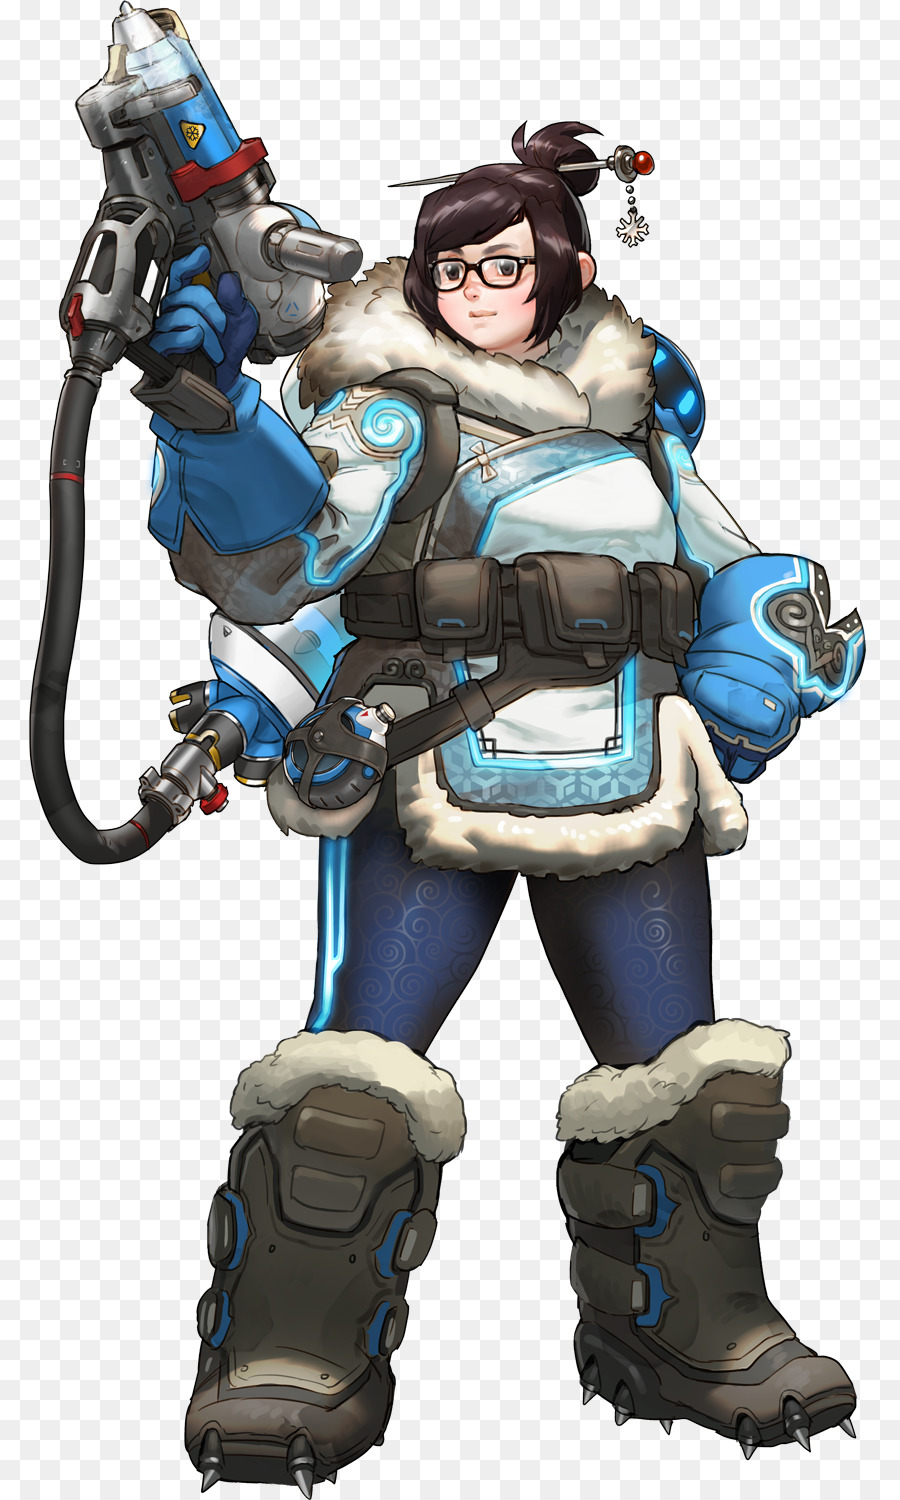 characters of overwatch mei d va overwatch png download 842 1500